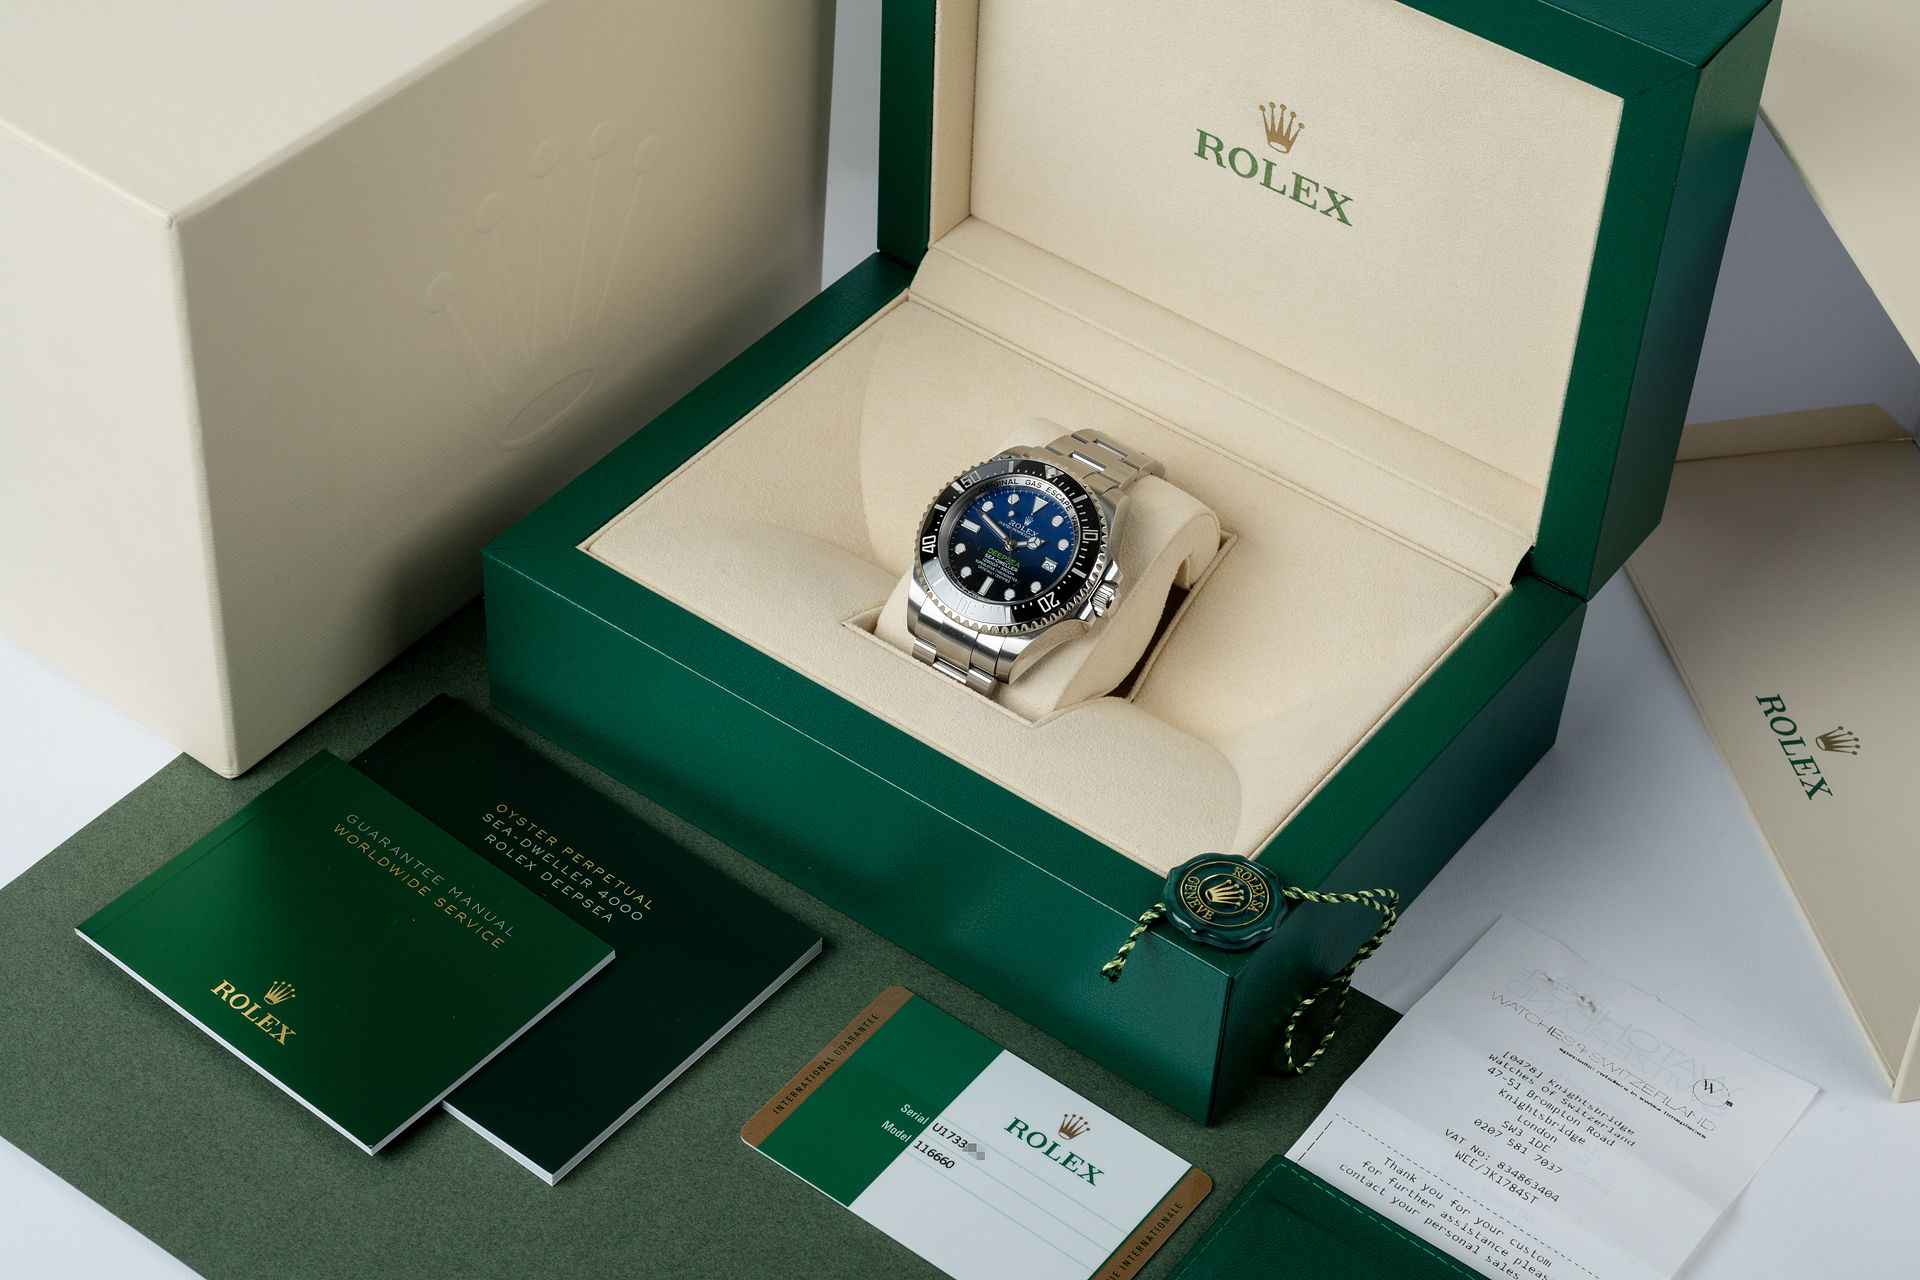 ref 116660 | Under Rolex Warranty  | Rolex Sea-Dweller Deepsea